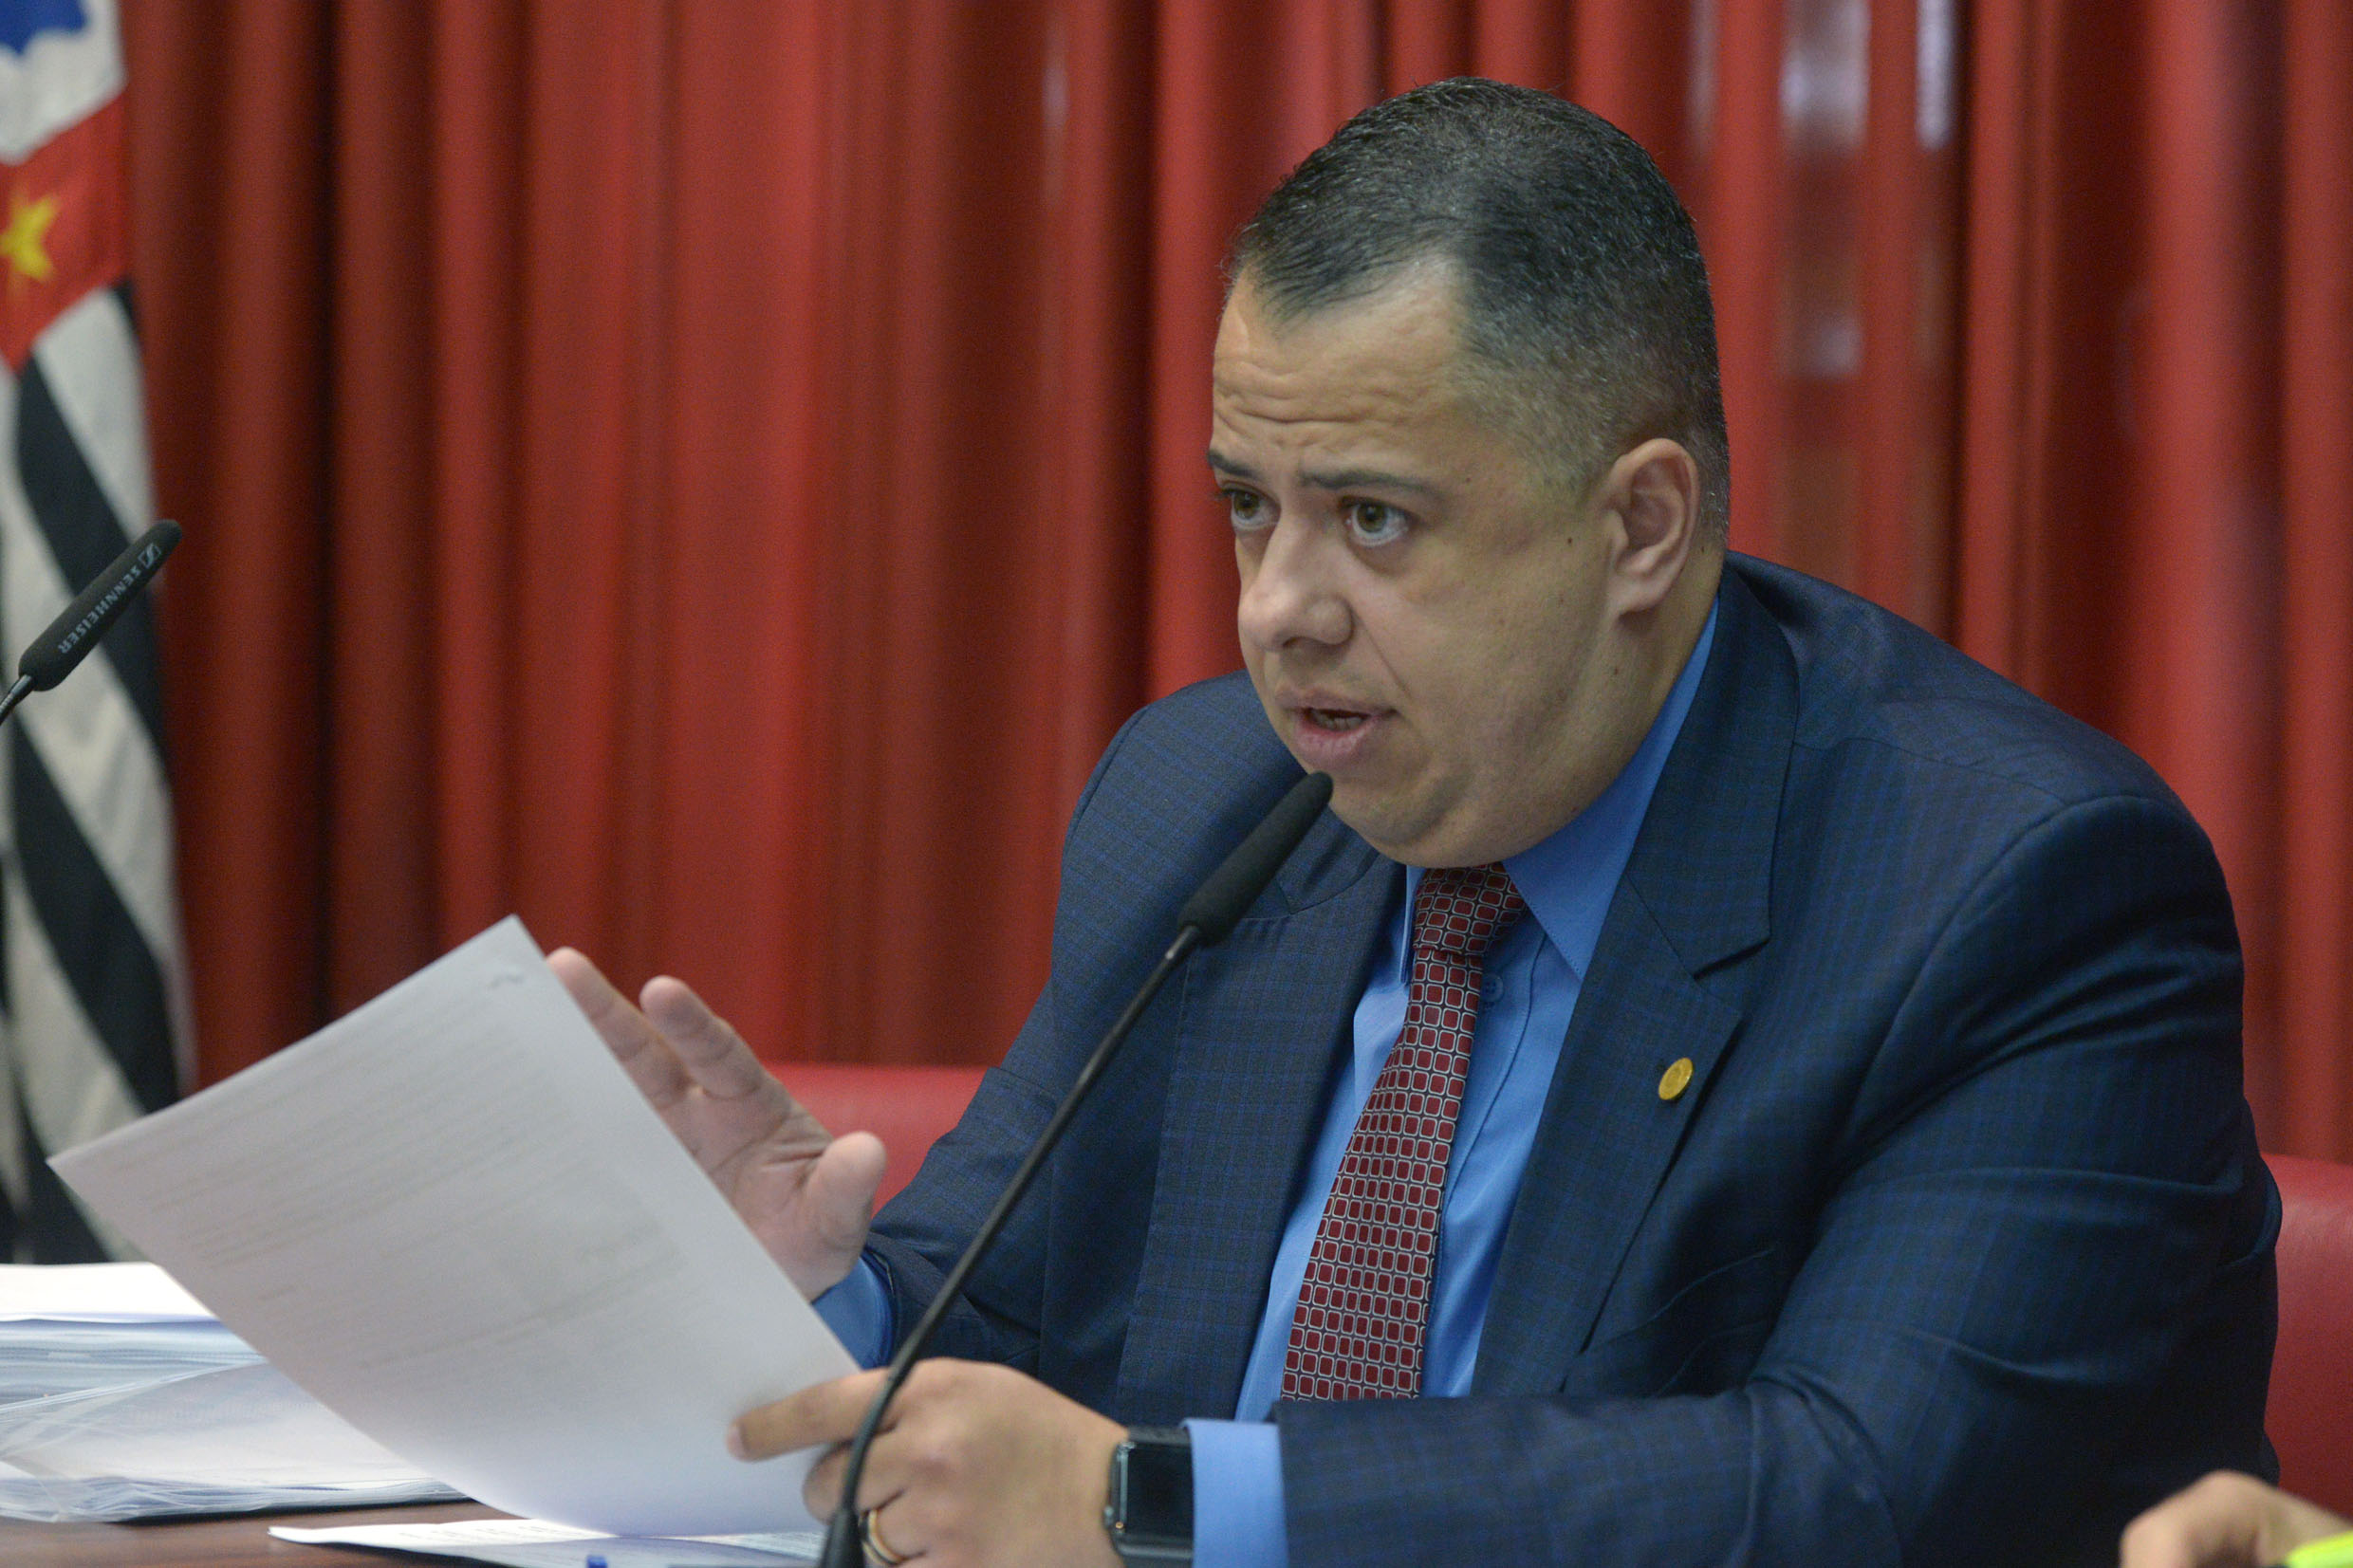 Wellington Moura preside a CPI<a style='float:right' href='https://www3.al.sp.gov.br/repositorio/noticia/N-05-2019/fg233744.jpg' target=_blank><img src='/_img/material-file-download-white.png' width='14px' alt='Clique para baixar a imagem'></a>